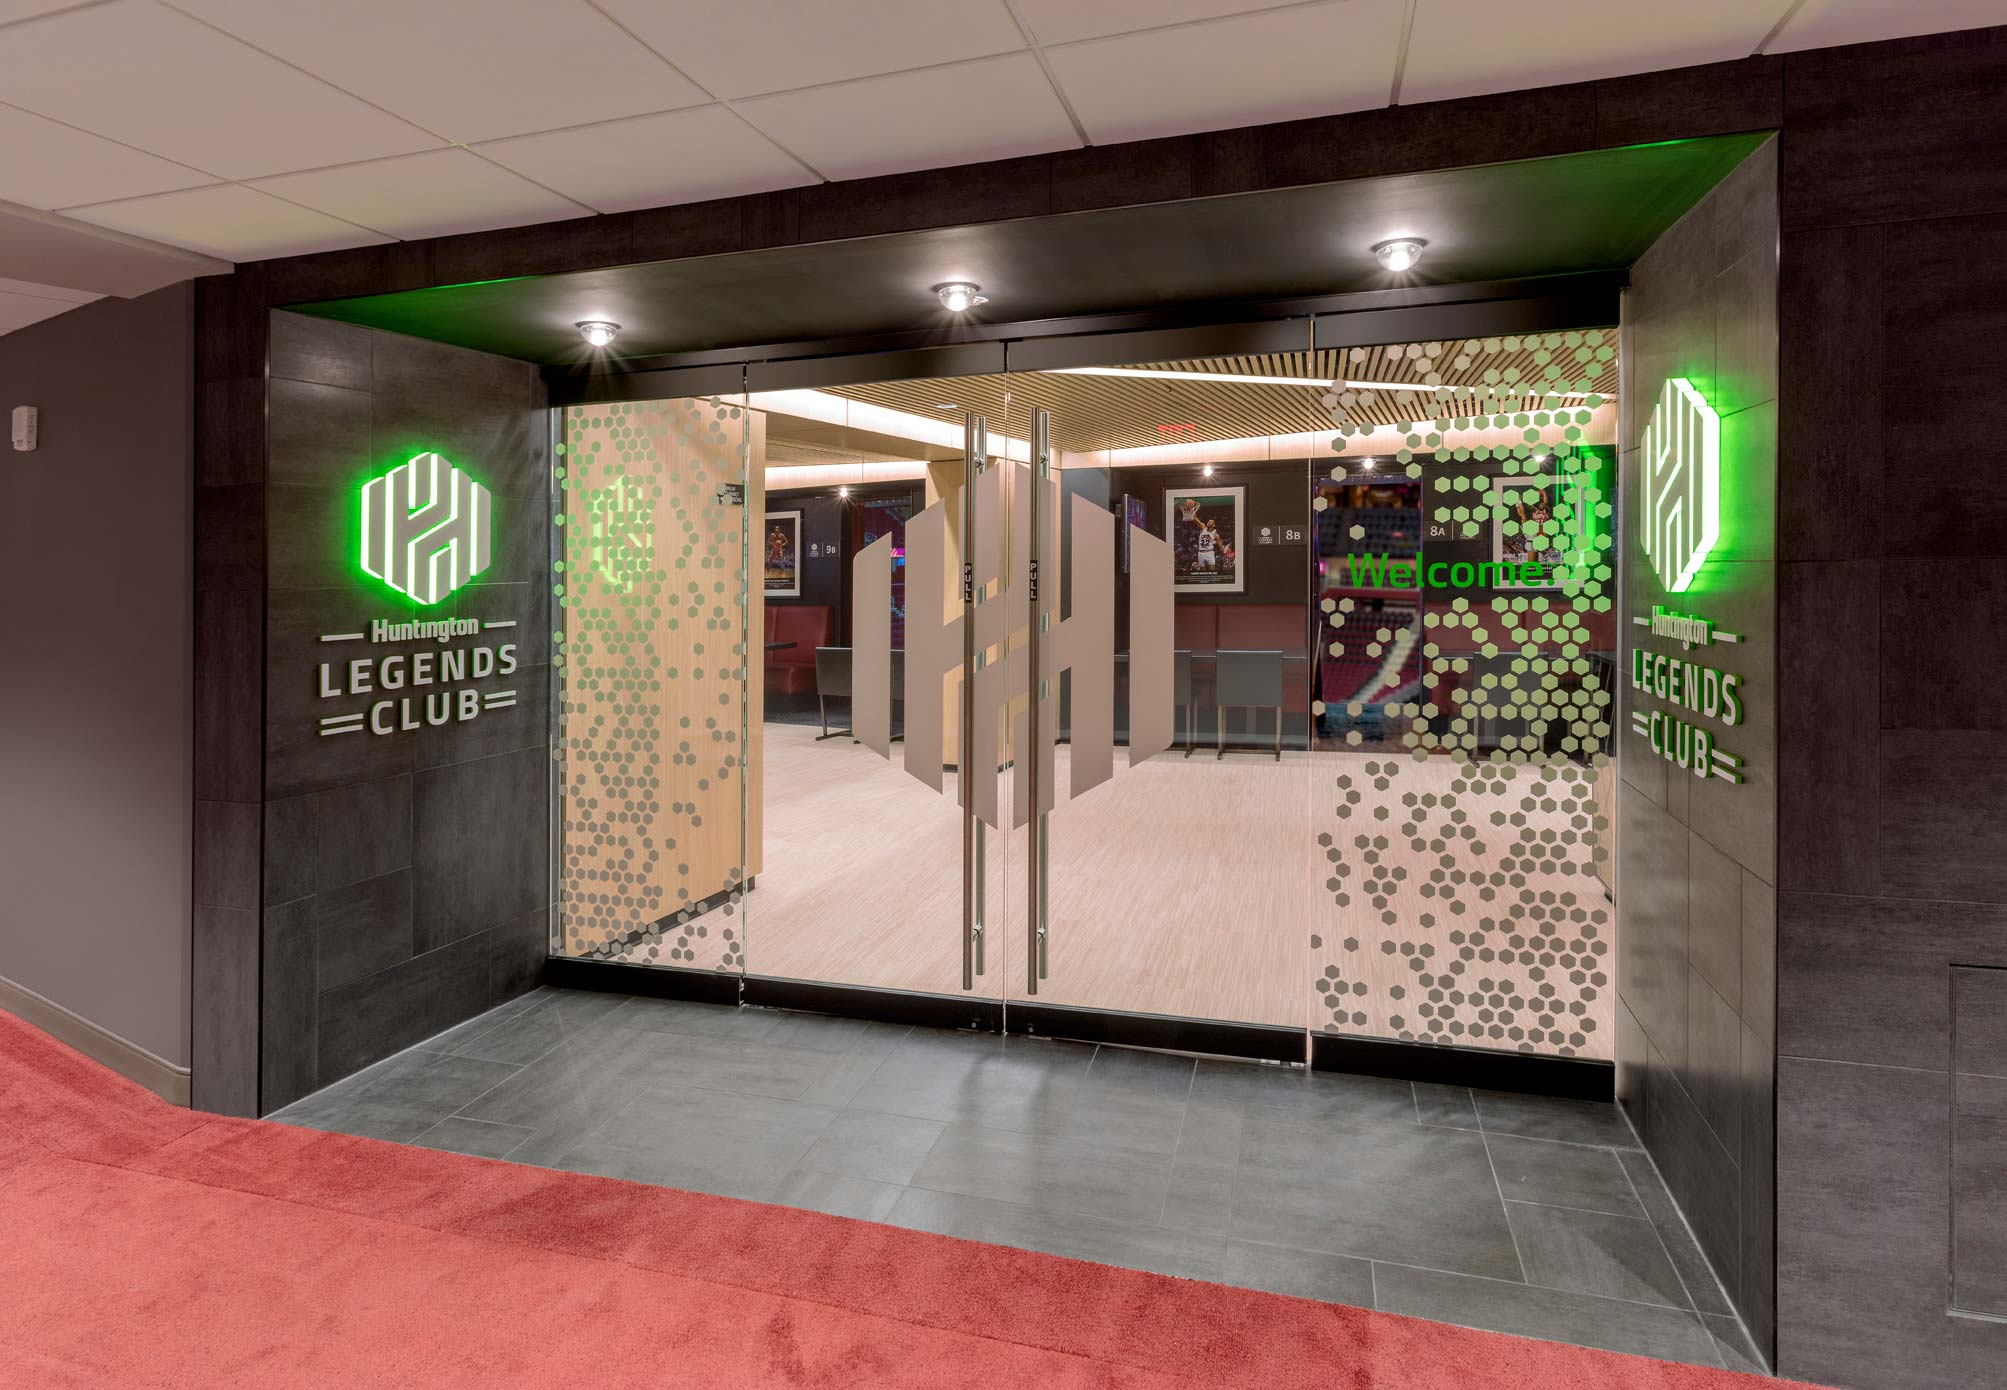 Huntington Legends Club Entrance